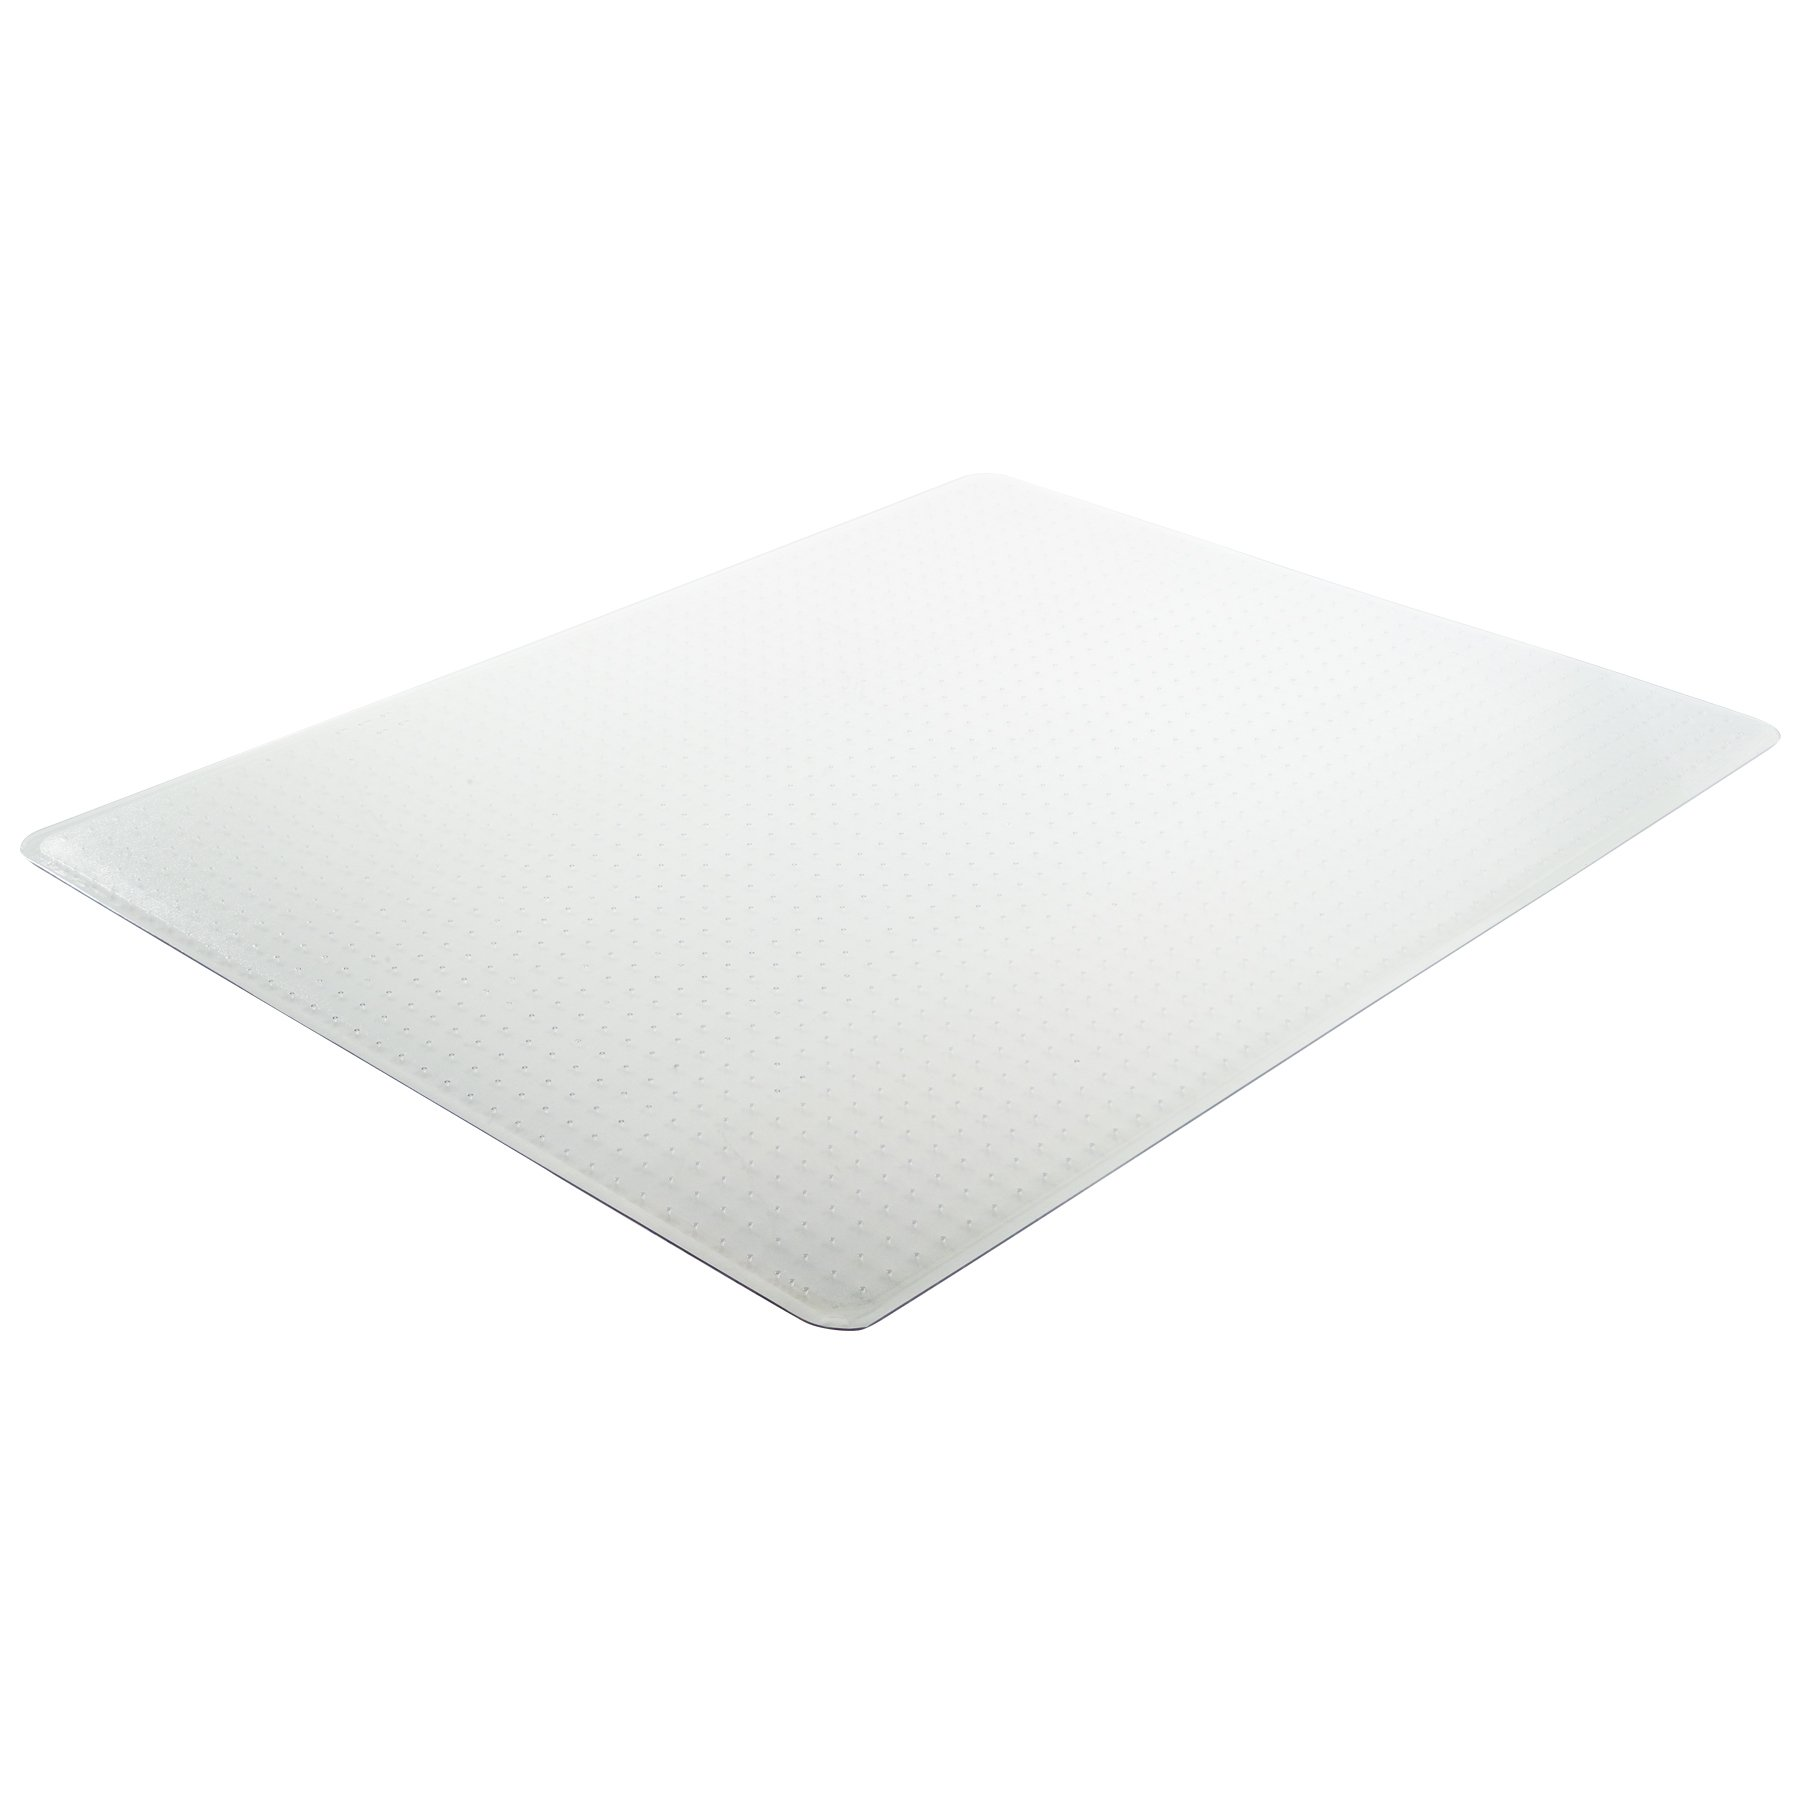 Deflecto UltraMat Clear Chair Mat, High Pile Carpet Use, Rectangle, Beveled Edge, 36 x 48 Inches (CM16143)